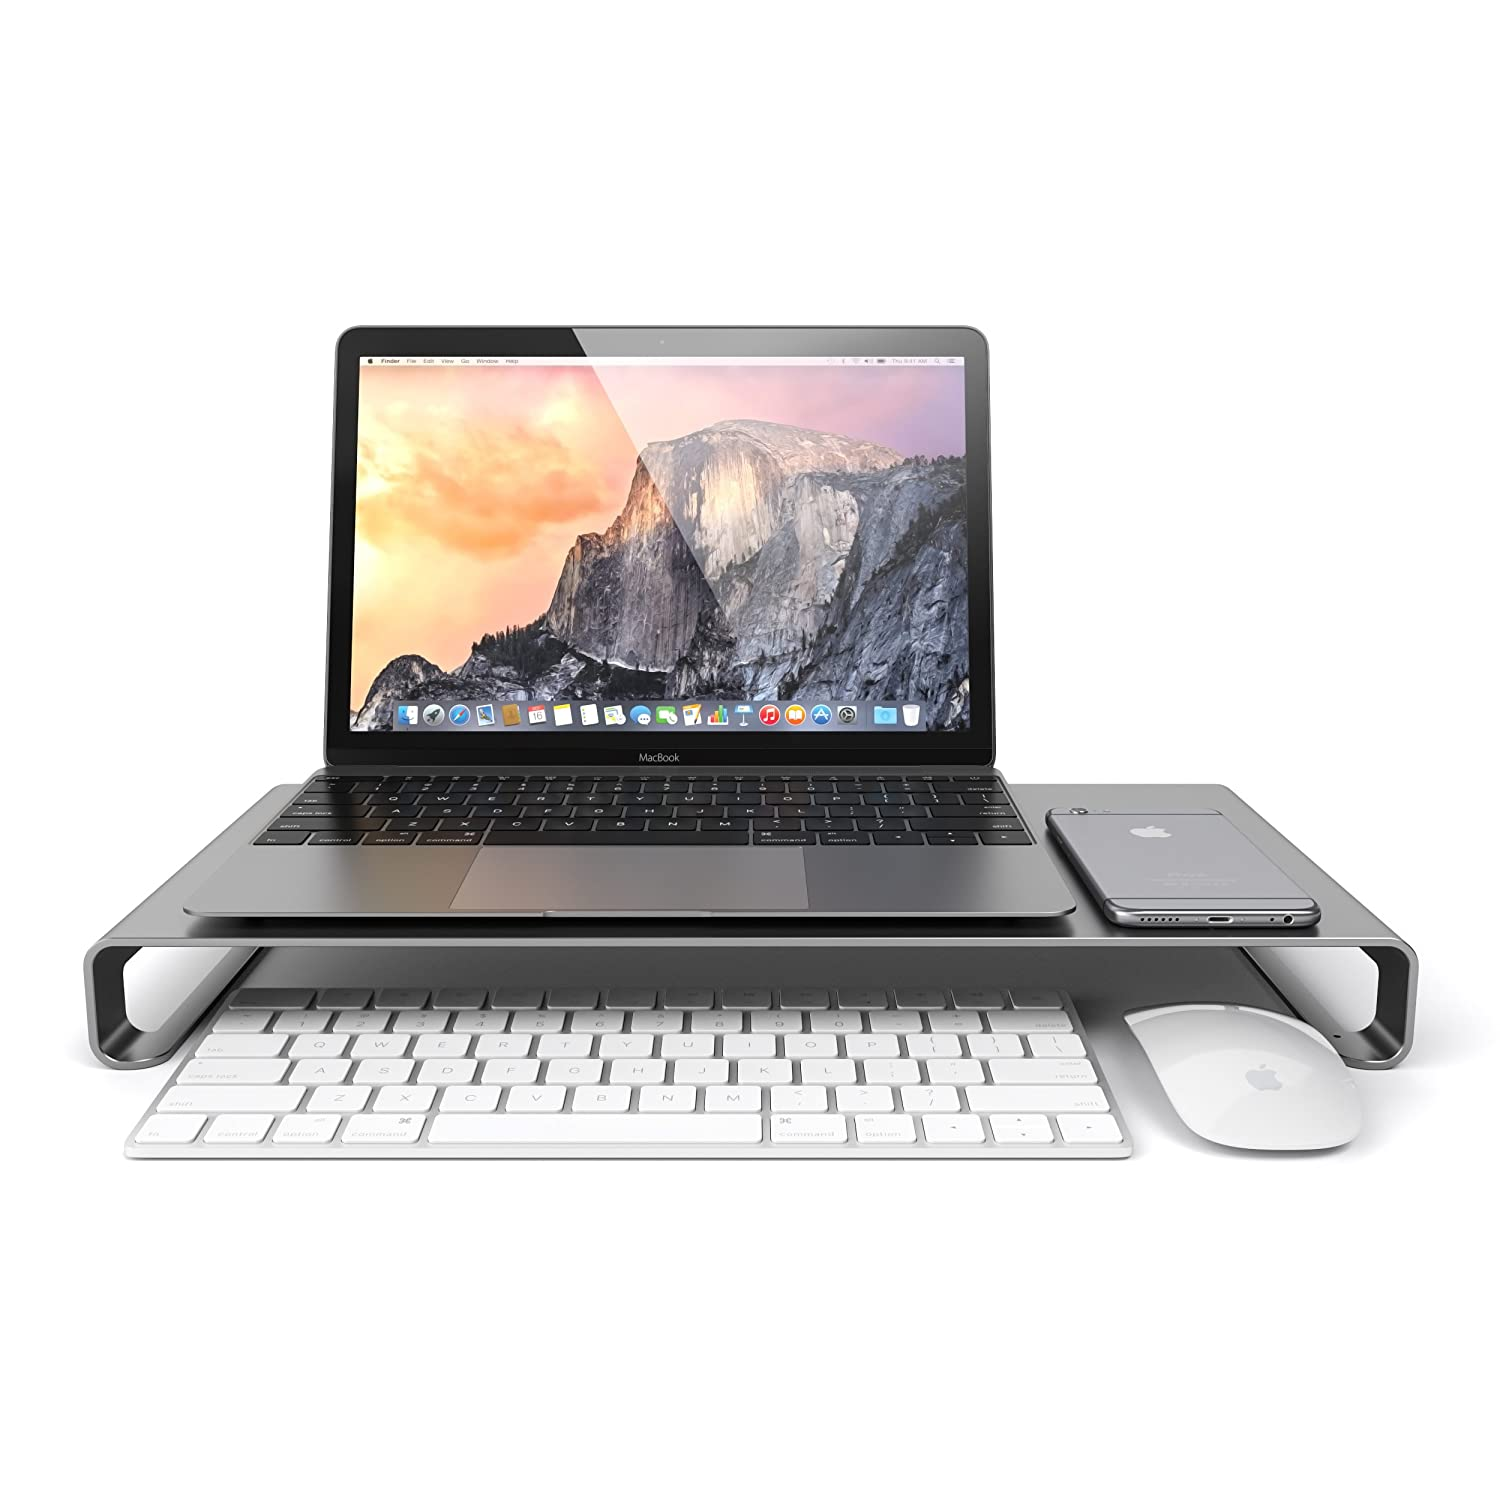 Satechi Aluminum Universal Unibody Monitor Stand For 2017 Mac Book Pro, I Mac Pro, Google Chromebook, Microsoft Surface, Dell, Asus And More (Space Gray) by Satechi